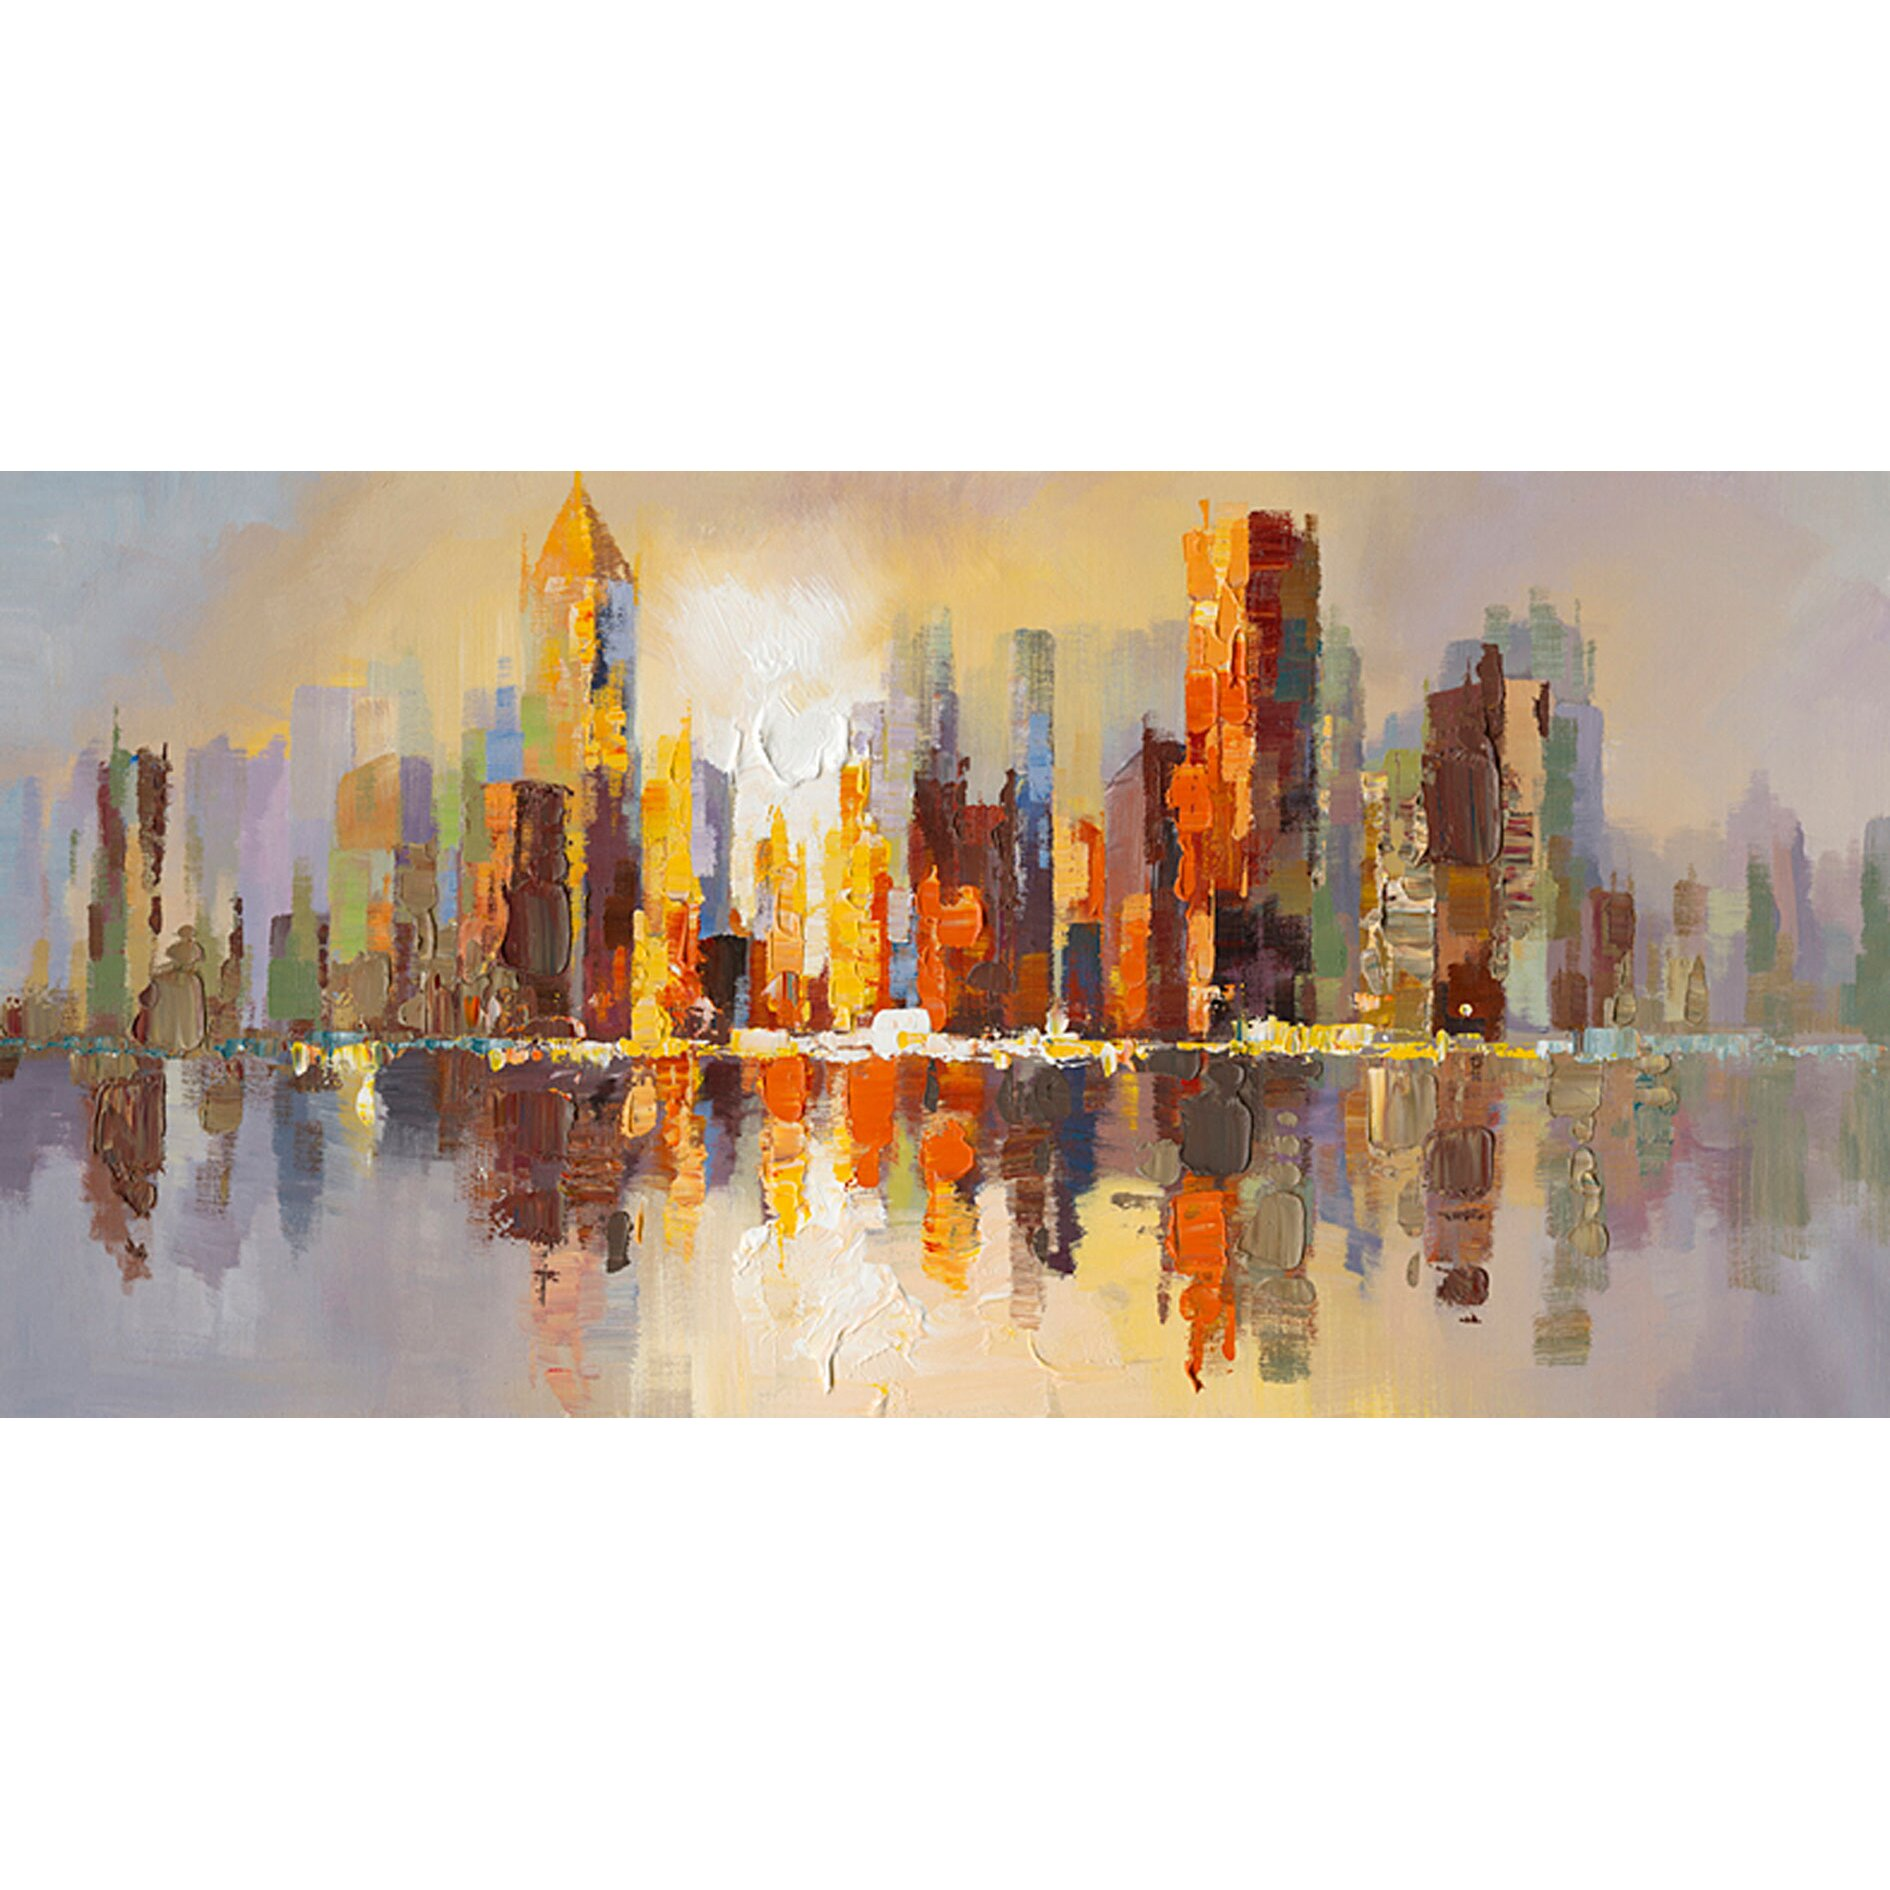 Brayden studio city life painting print on wrapped canvas for Canvas painting classes